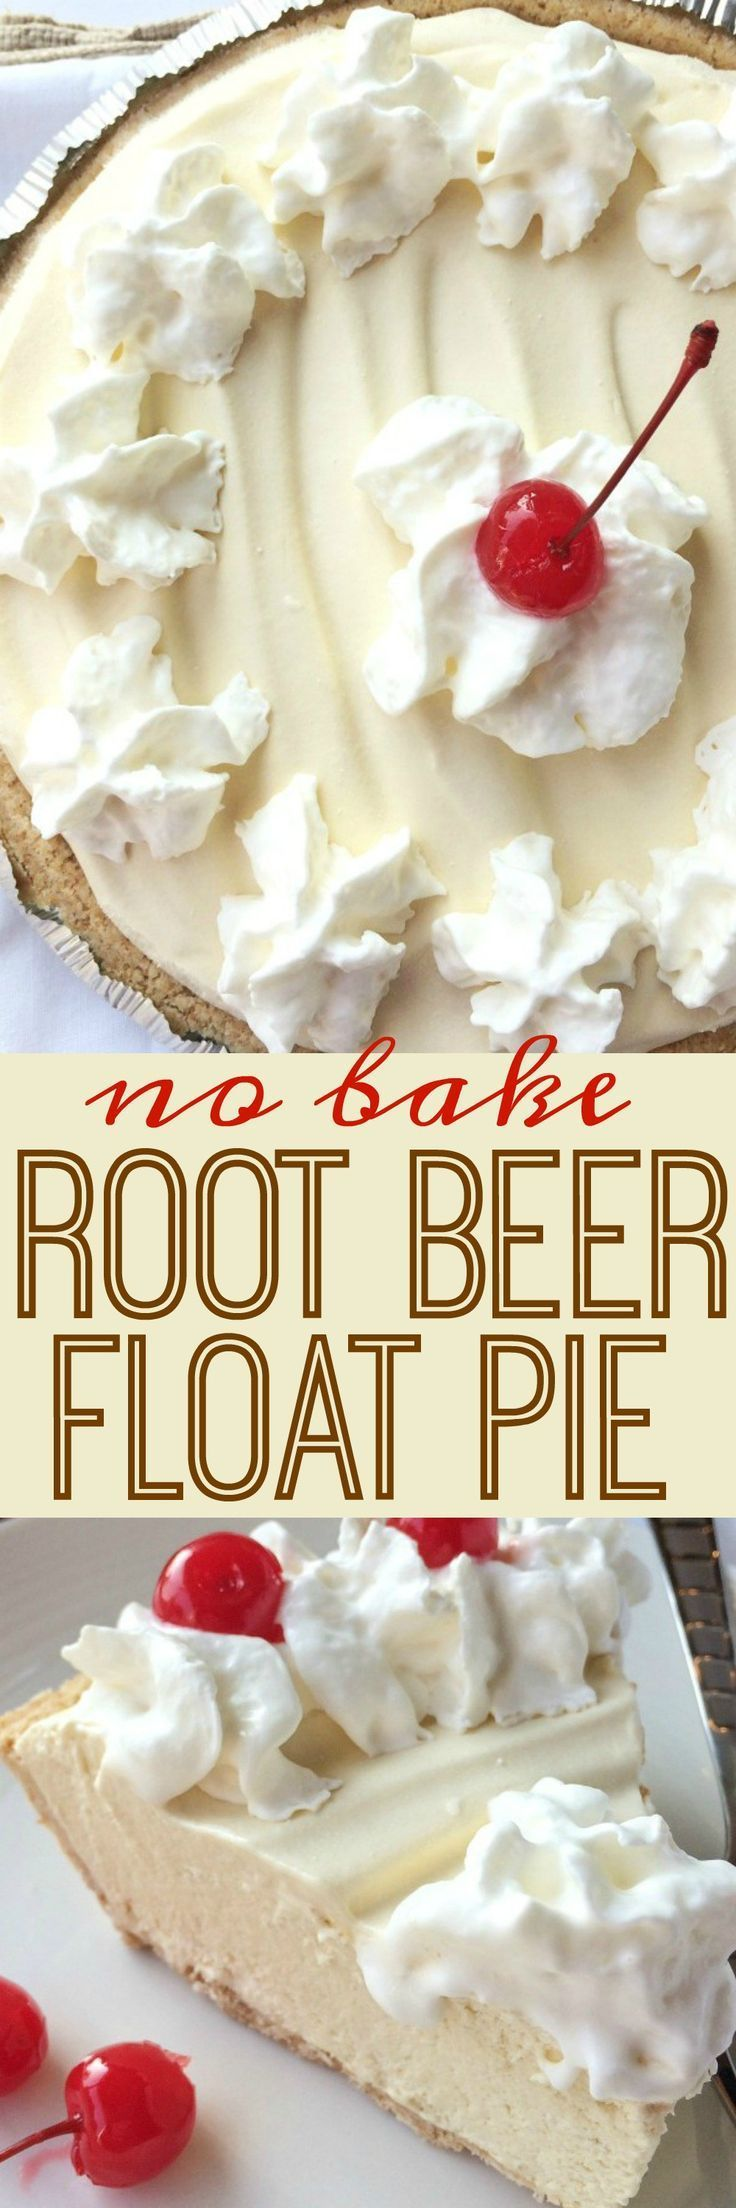 Creamy, cool, light & refreshing! This root beer float pie is the perfect treat on those hot sunny days. Only a few minutes of prep and then some freezer time and you have an easy, no bake pie that tastes EXACTLY like a root beer float!